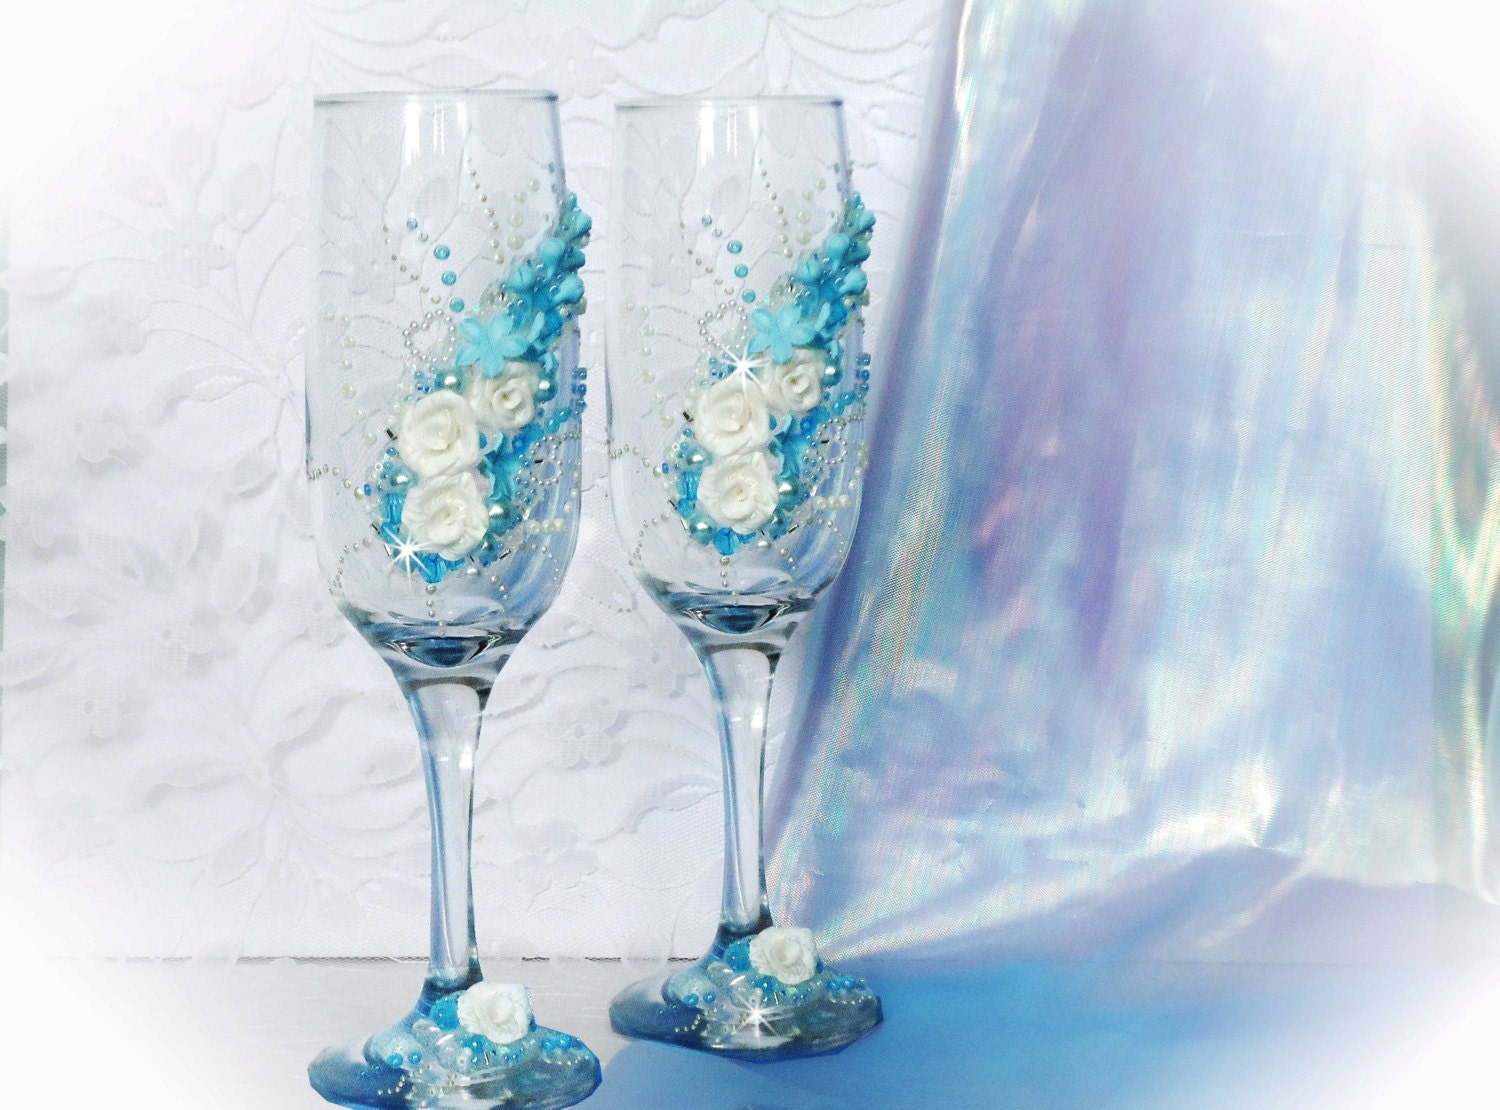 Pics For Gt Wedding Champagne Glasses Decorations